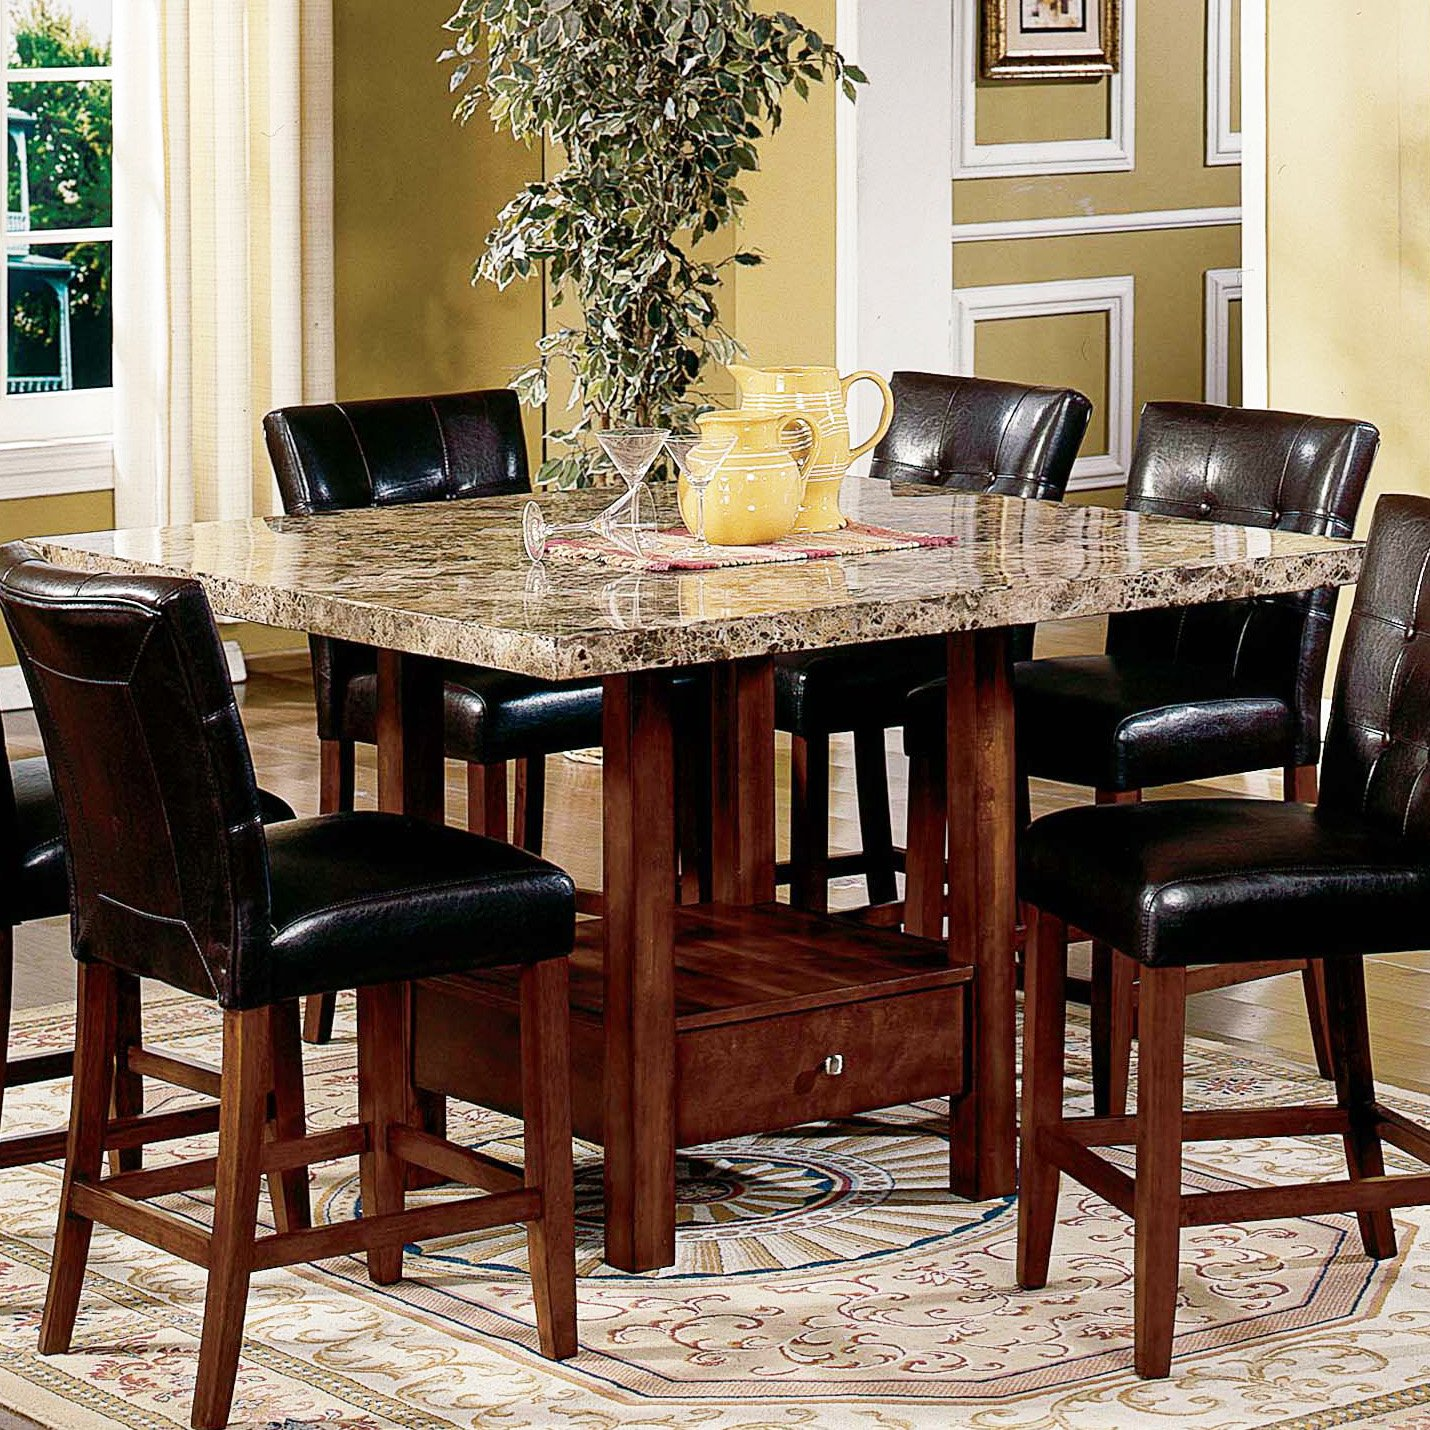 fresh at dining of high ideas style trend table top photo room with